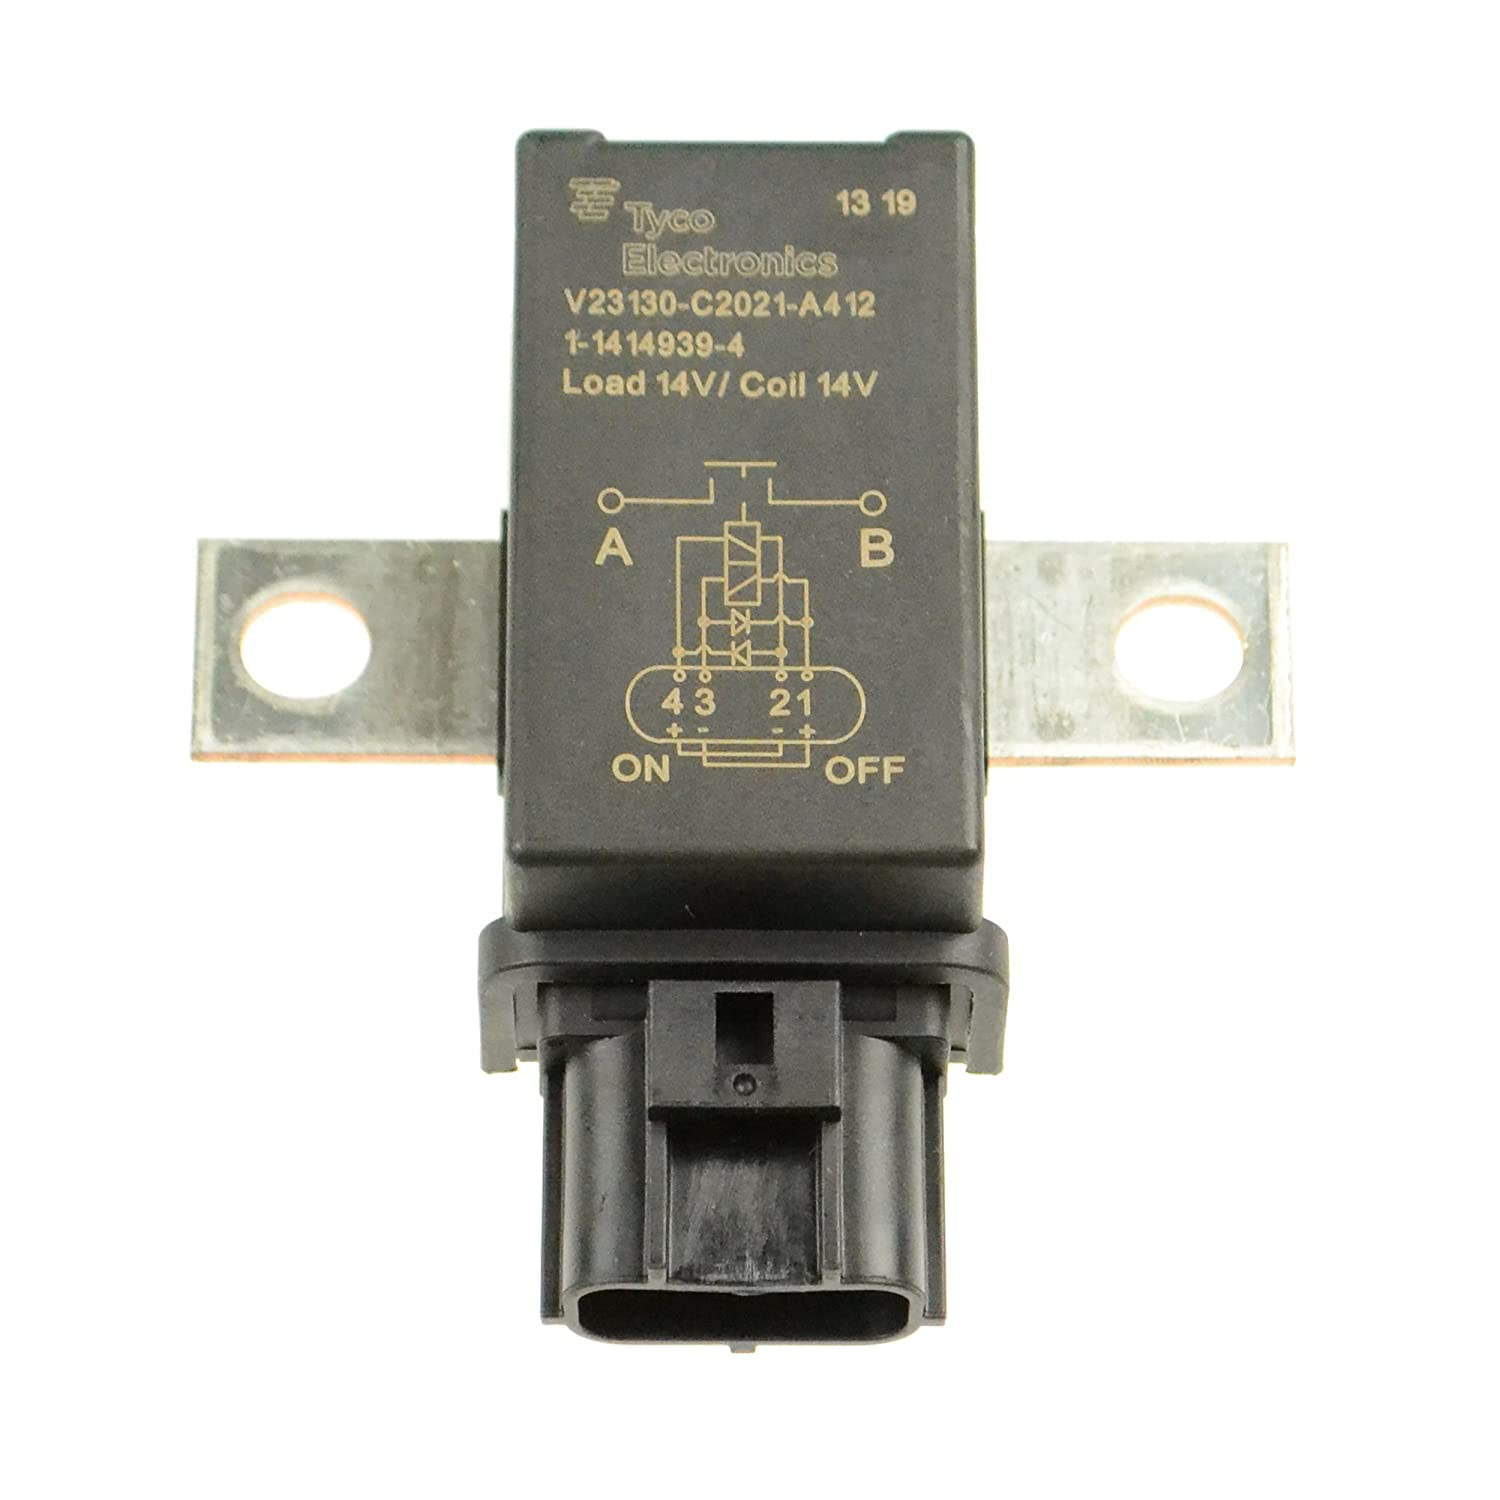 Amazon.com: Tyco 1-1414939-4 Battery Disconnect Relay ...